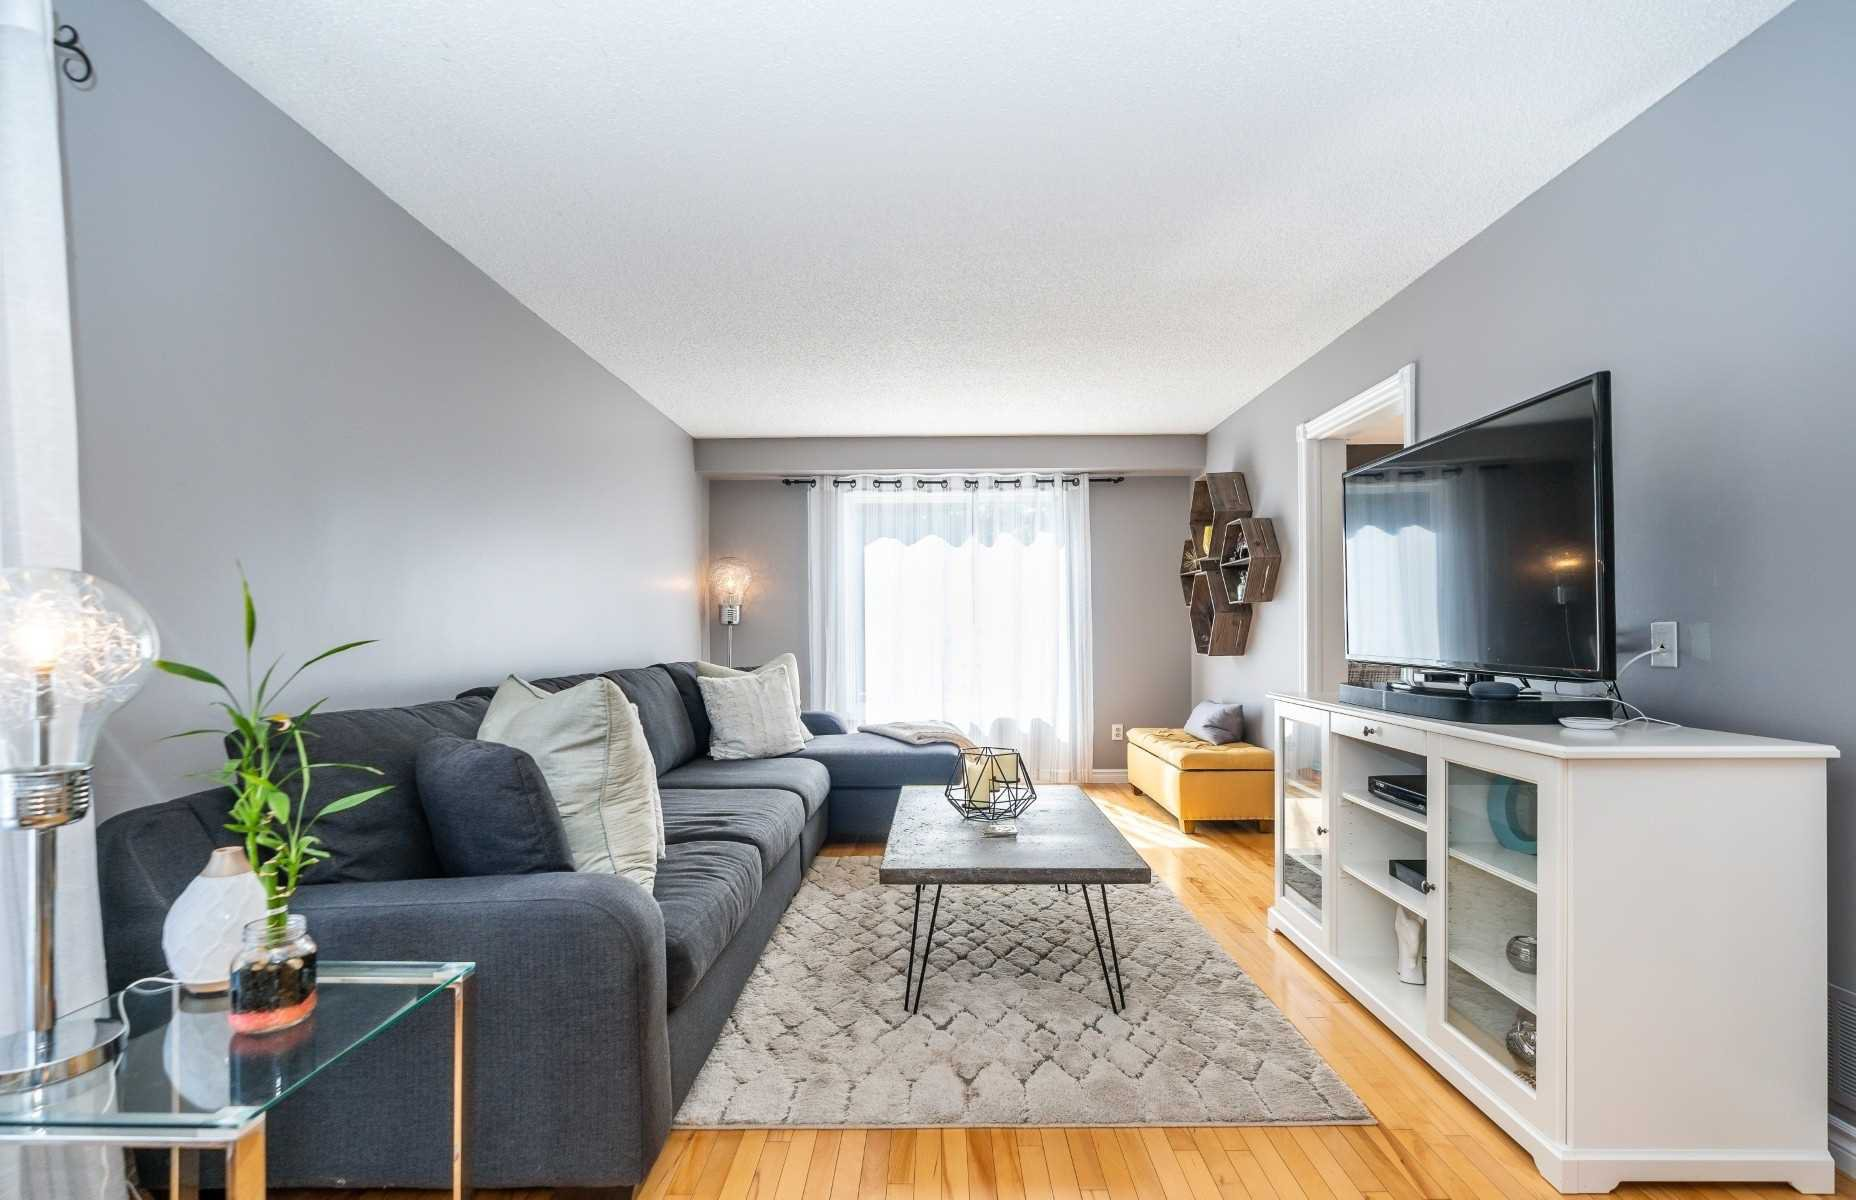 Photo 6: Photos: 1153 Snowberry Court in Oshawa: Pinecrest House (2-Storey) for sale : MLS®# E4794796